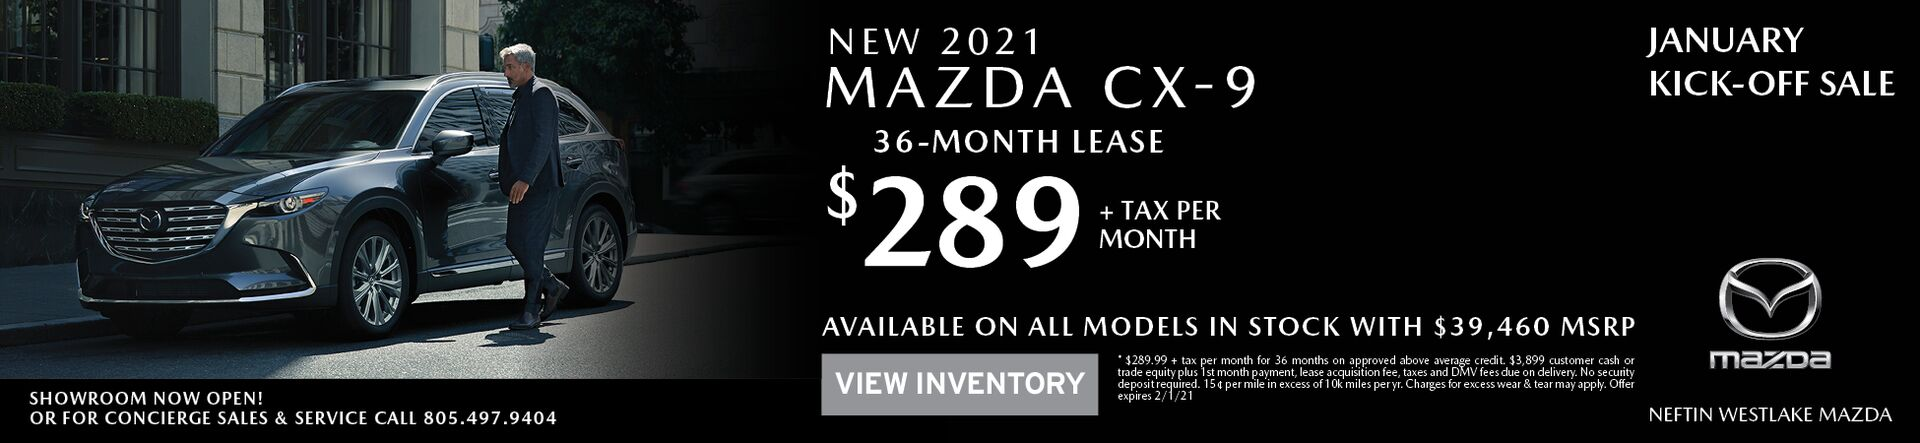 January '21 CX-9 Lease Offer